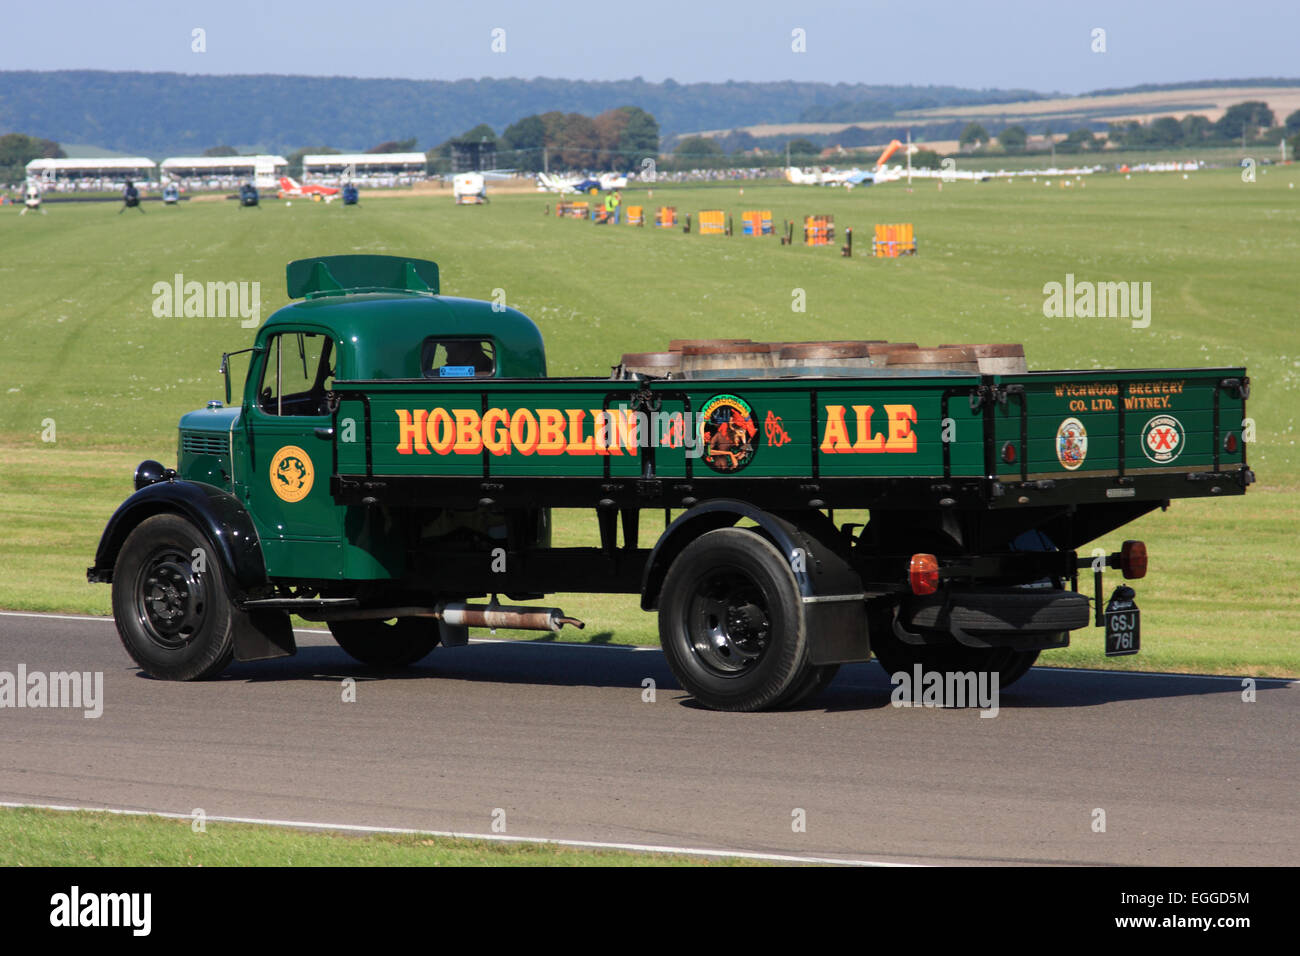 Parade of vintage vehicles / Goodwood Revival / Goodwood / UK - Stock Image